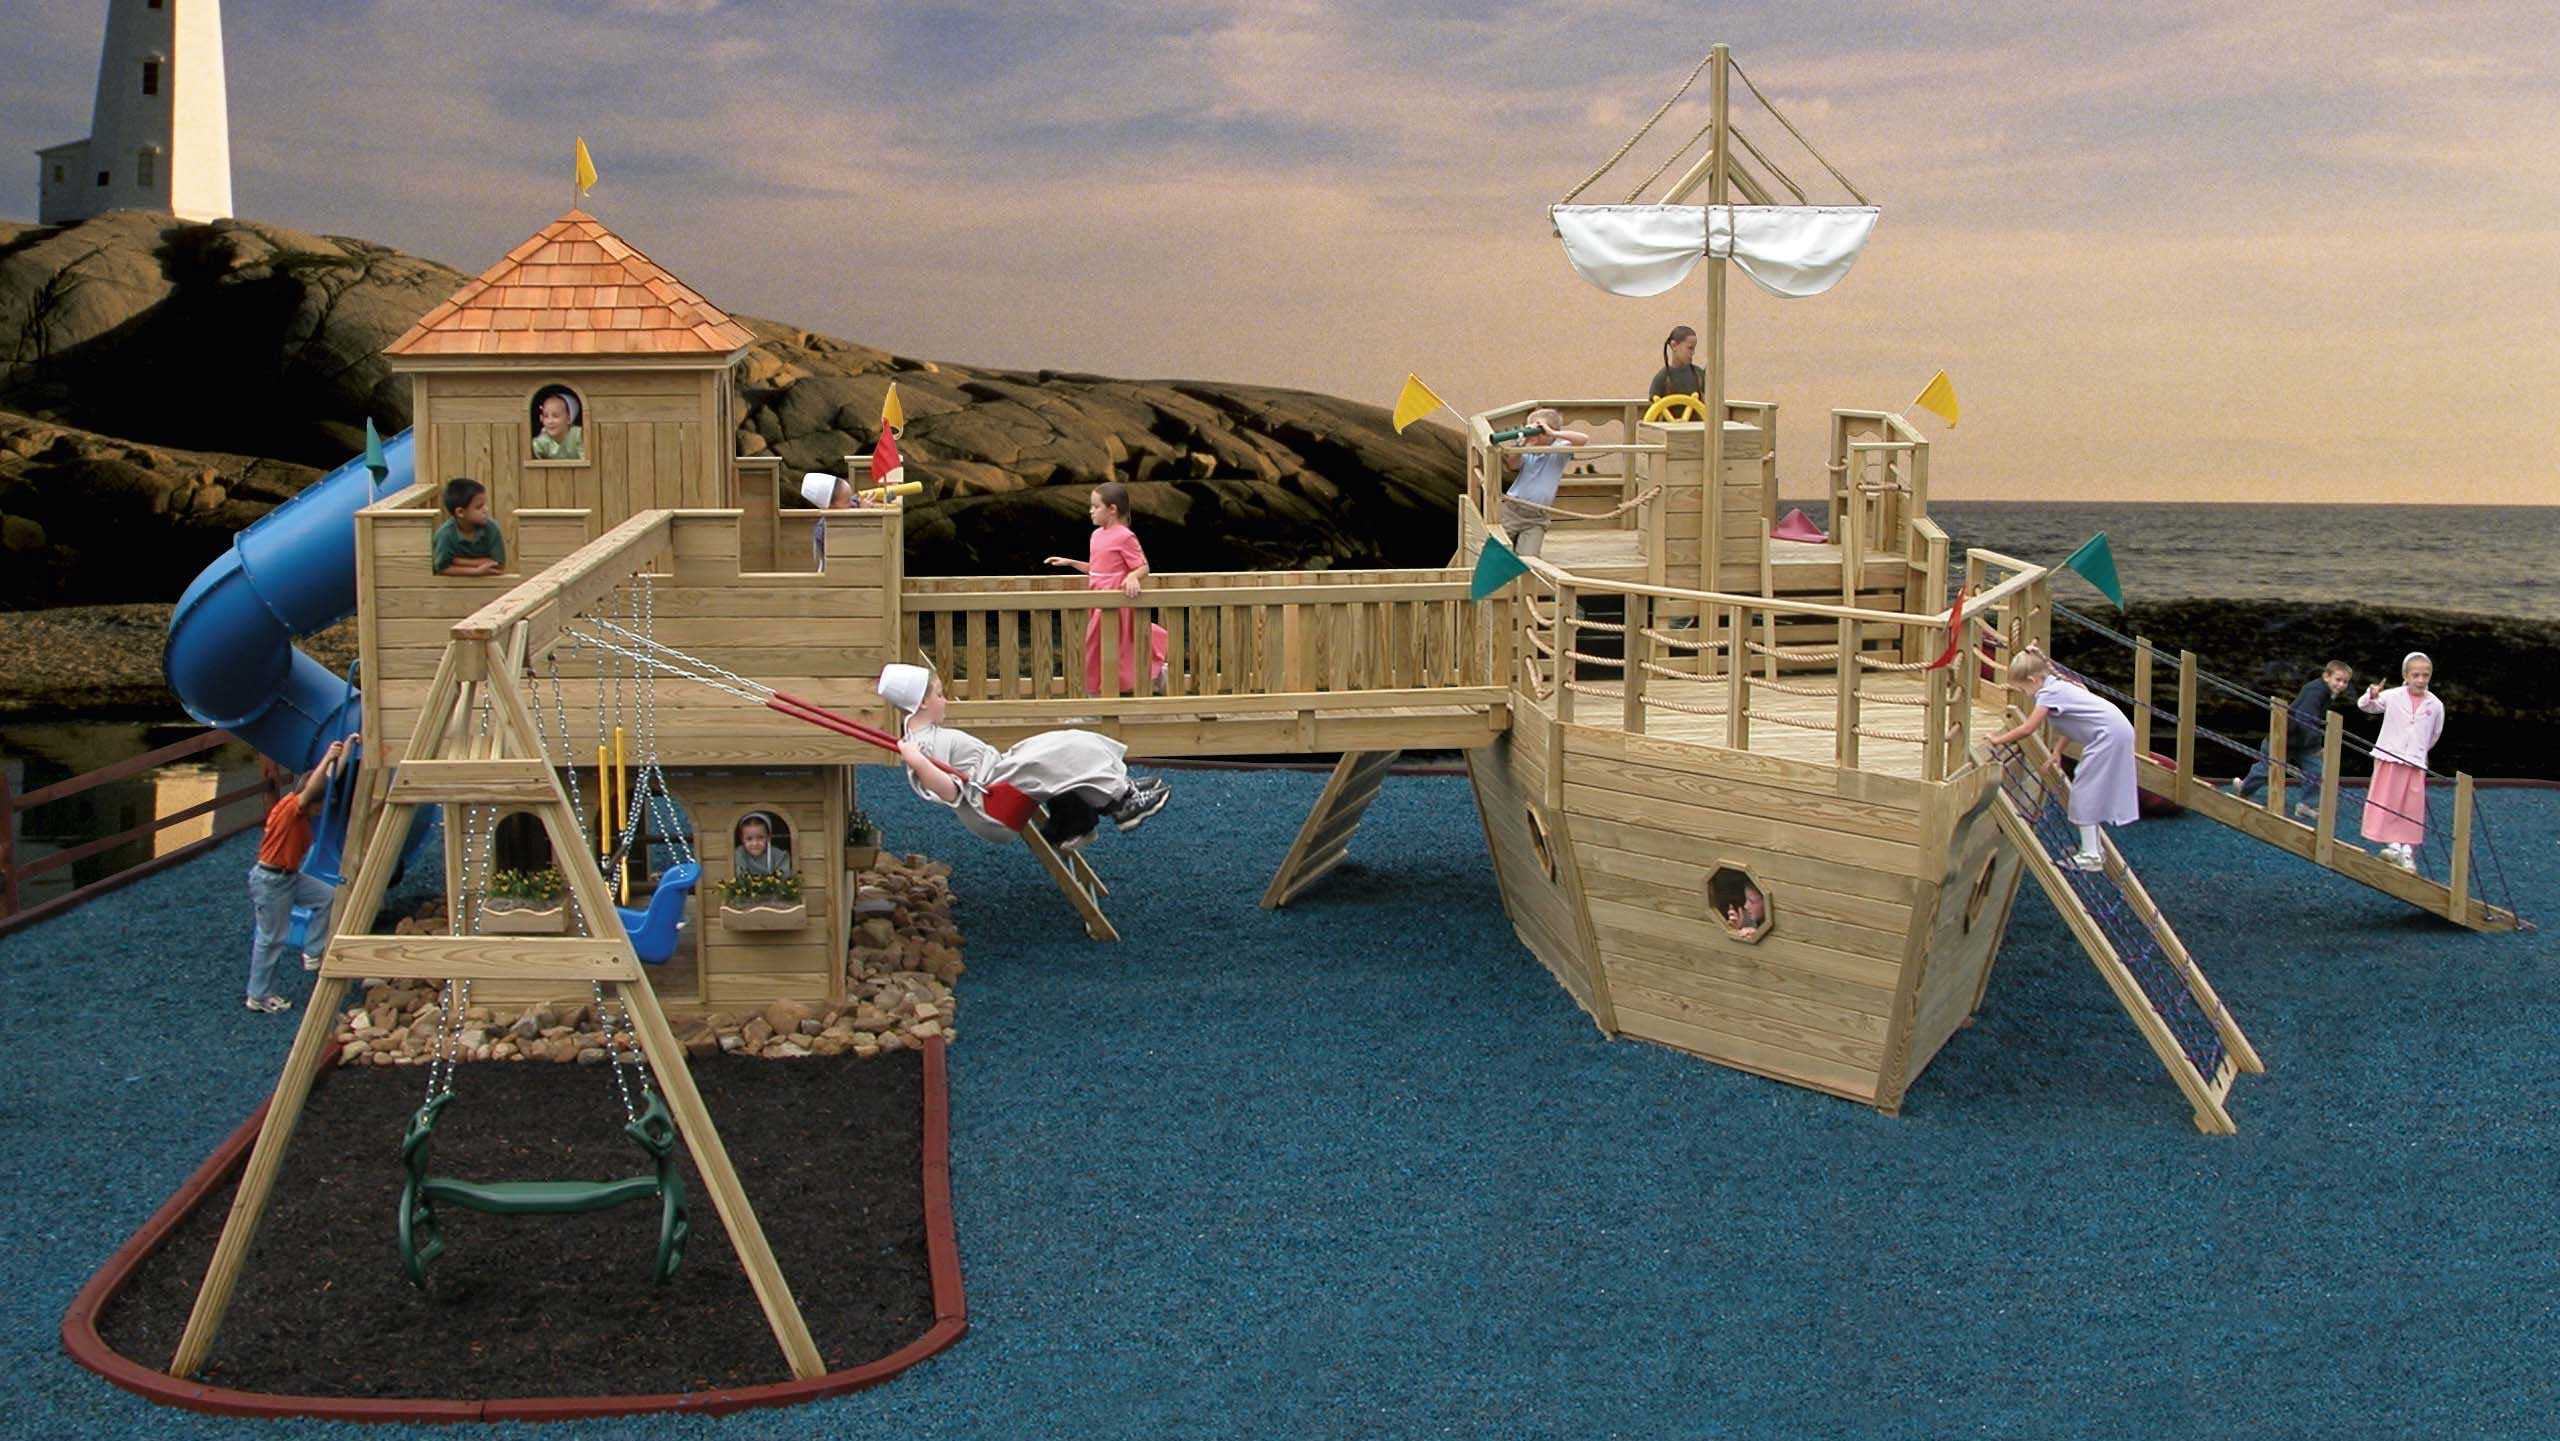 For the best in backyard playgrounds